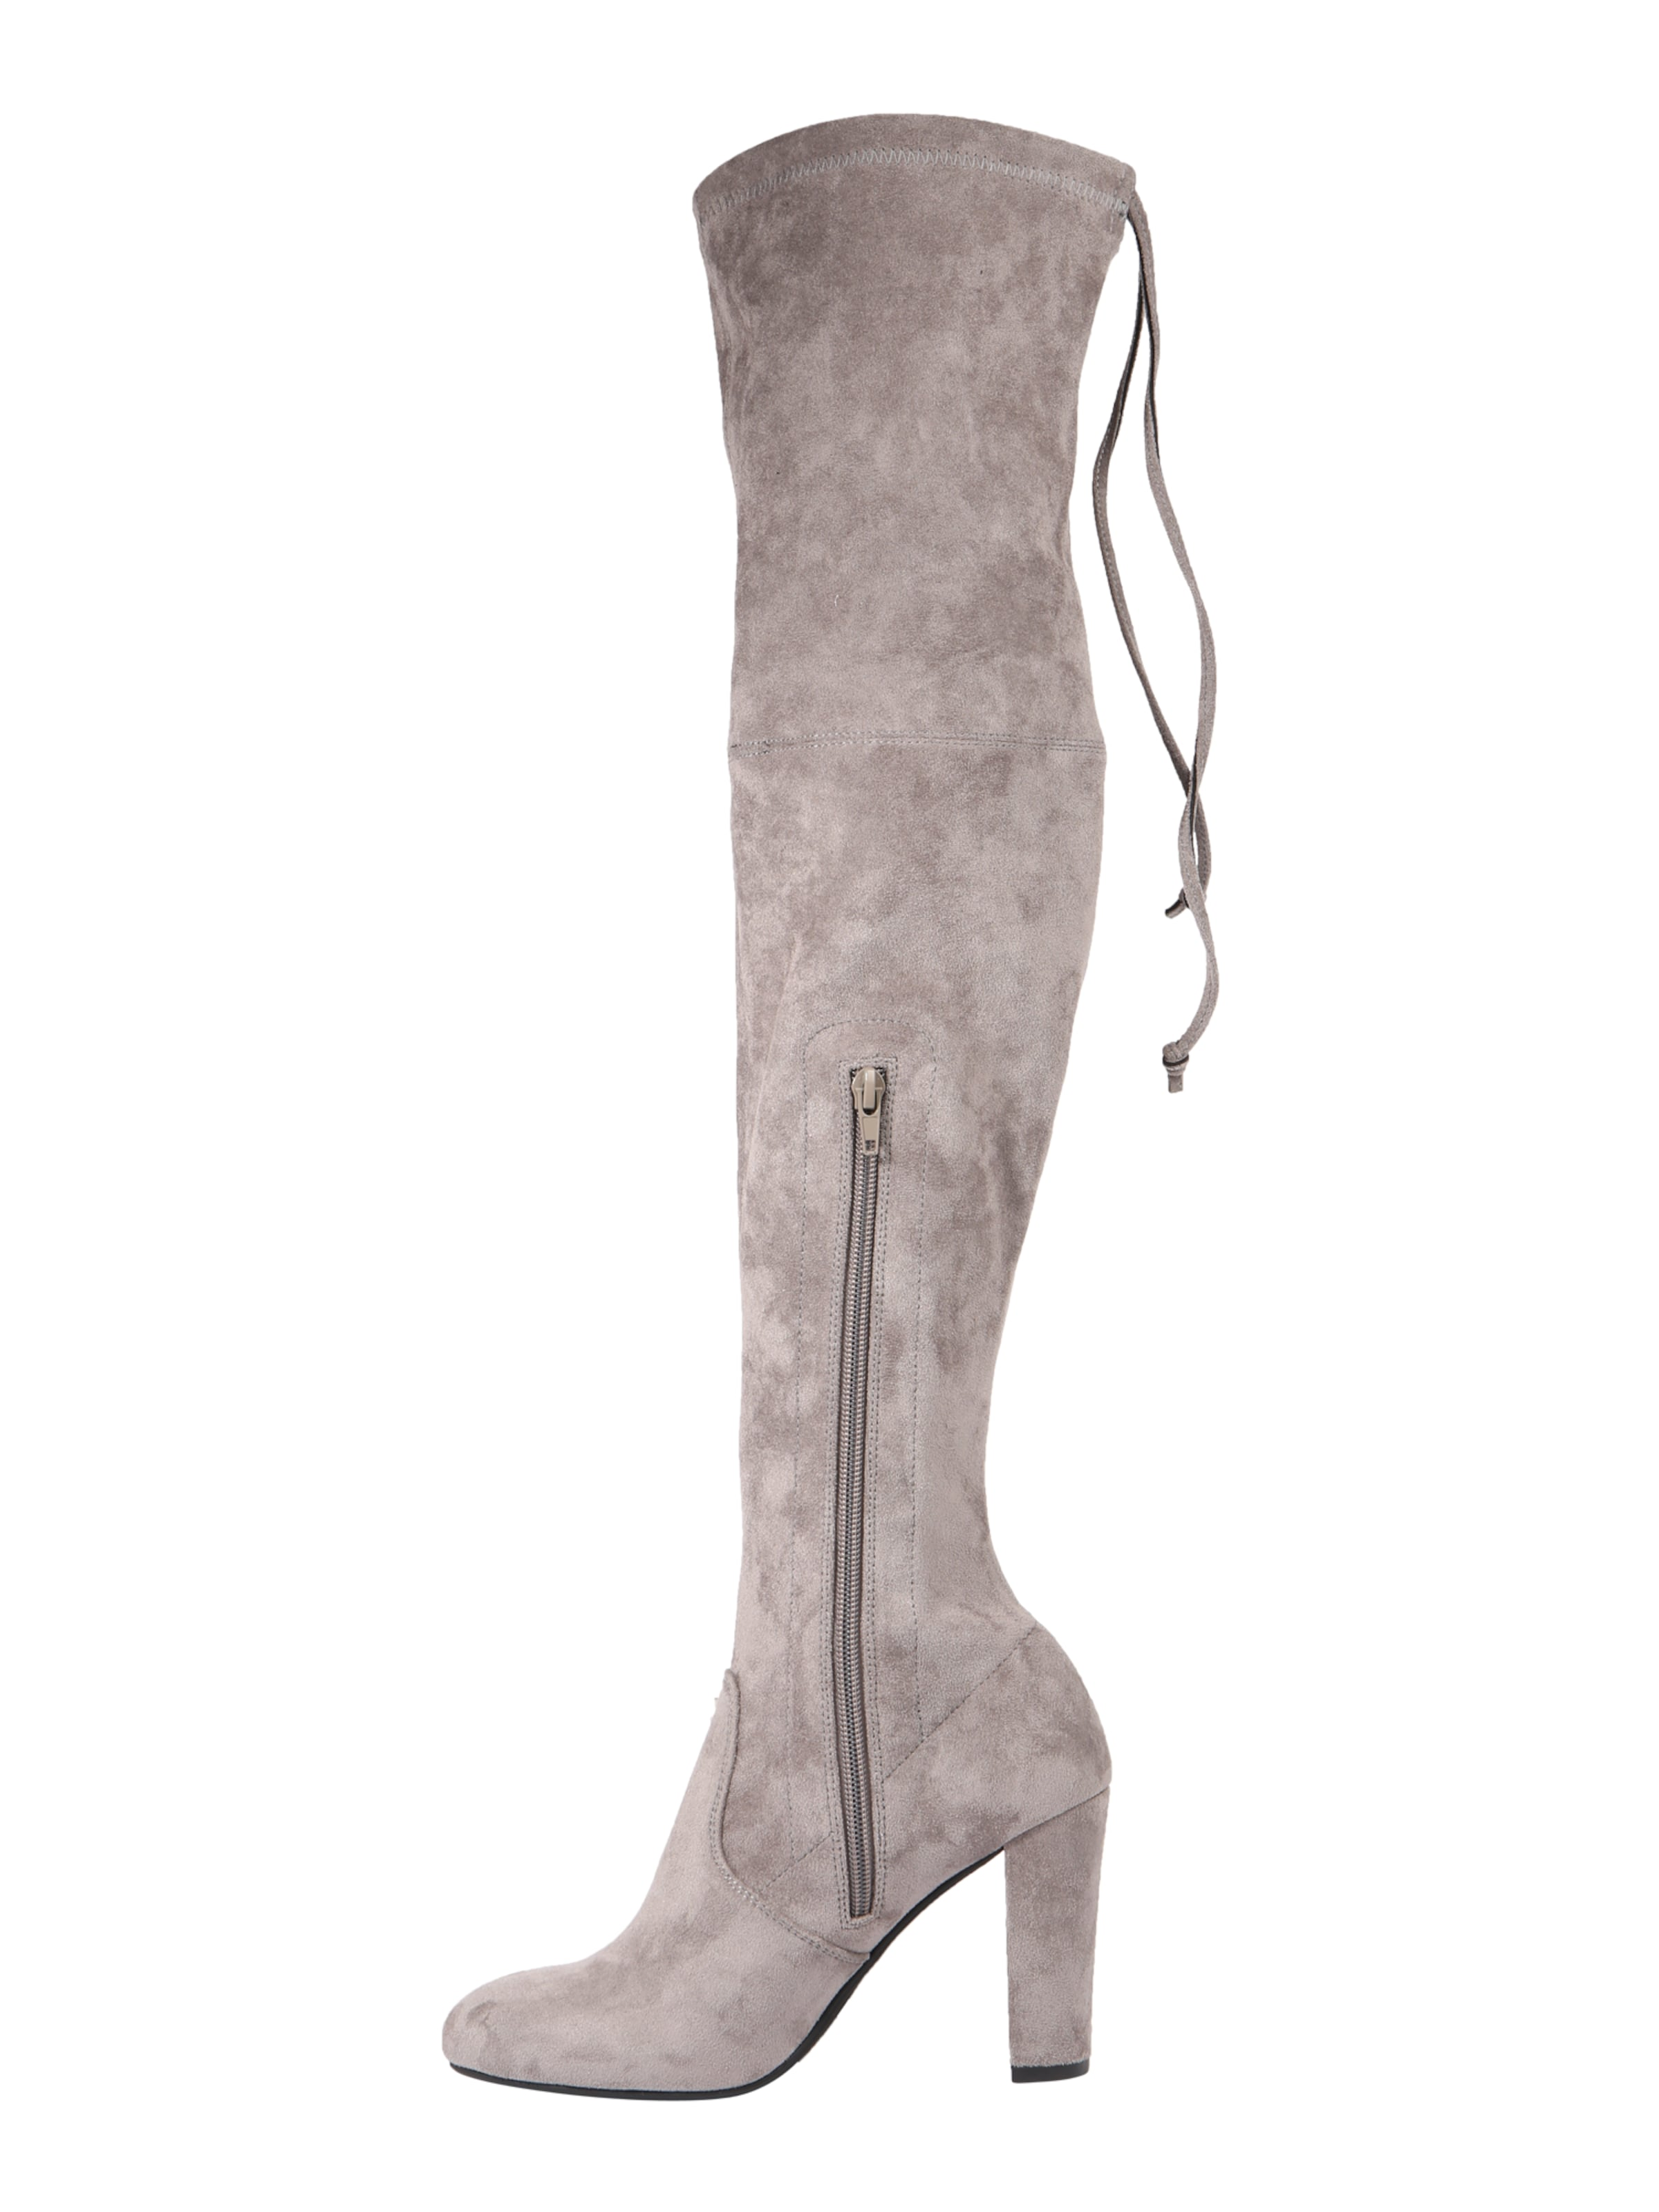 About You About In In Stiefel Grau Grau Stiefel You R54Ac3jLq